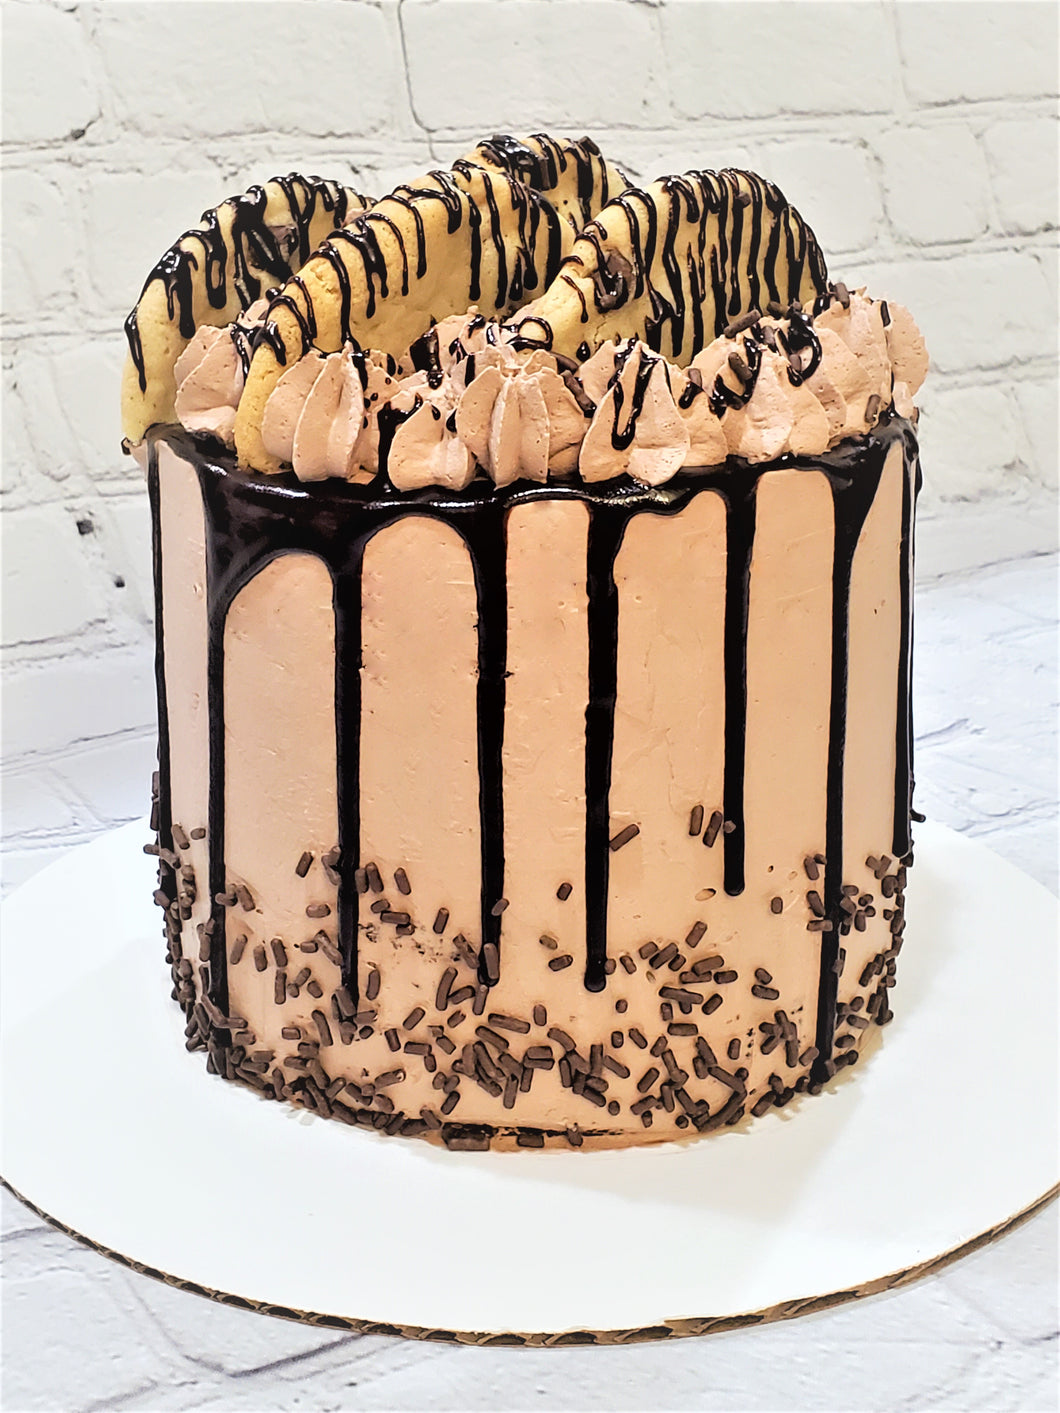 CHOCOLATE CHIP BIRTHDAY CAKE WITH WHIPPED CHOCOLATE BUTTERCREAM